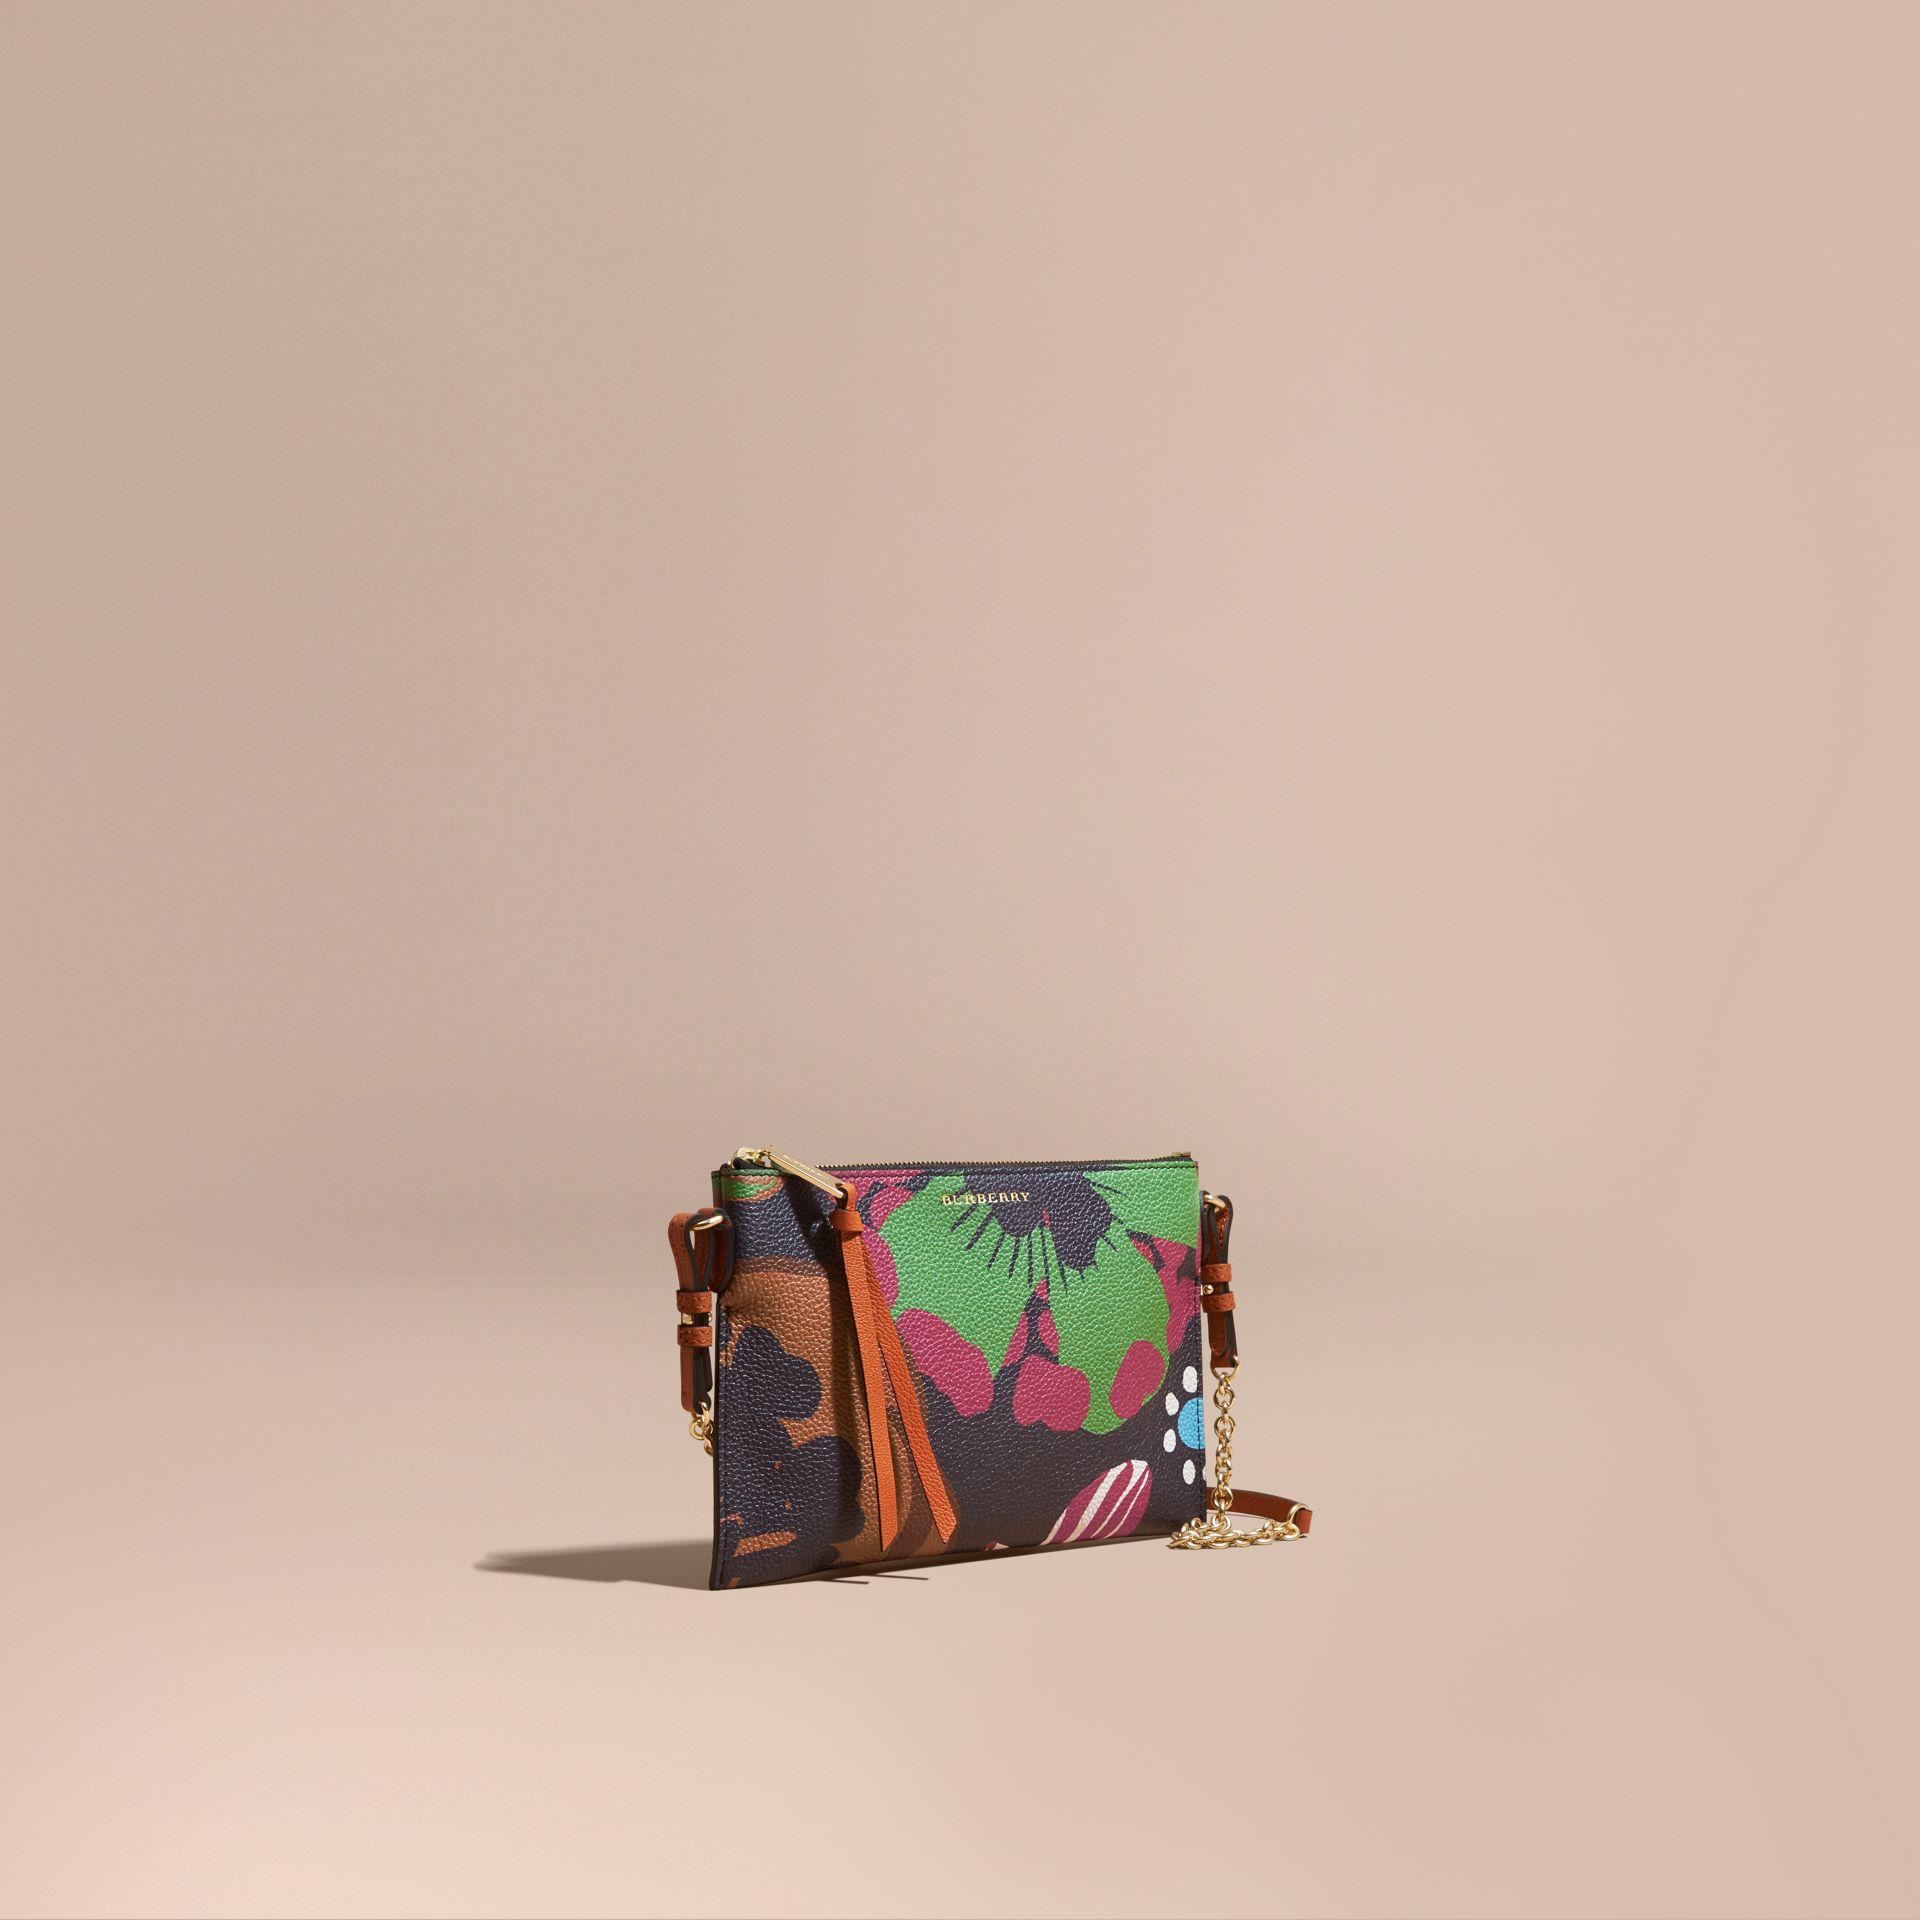 Floral Print Leather Clutch Bag in Navy - gallery image 1